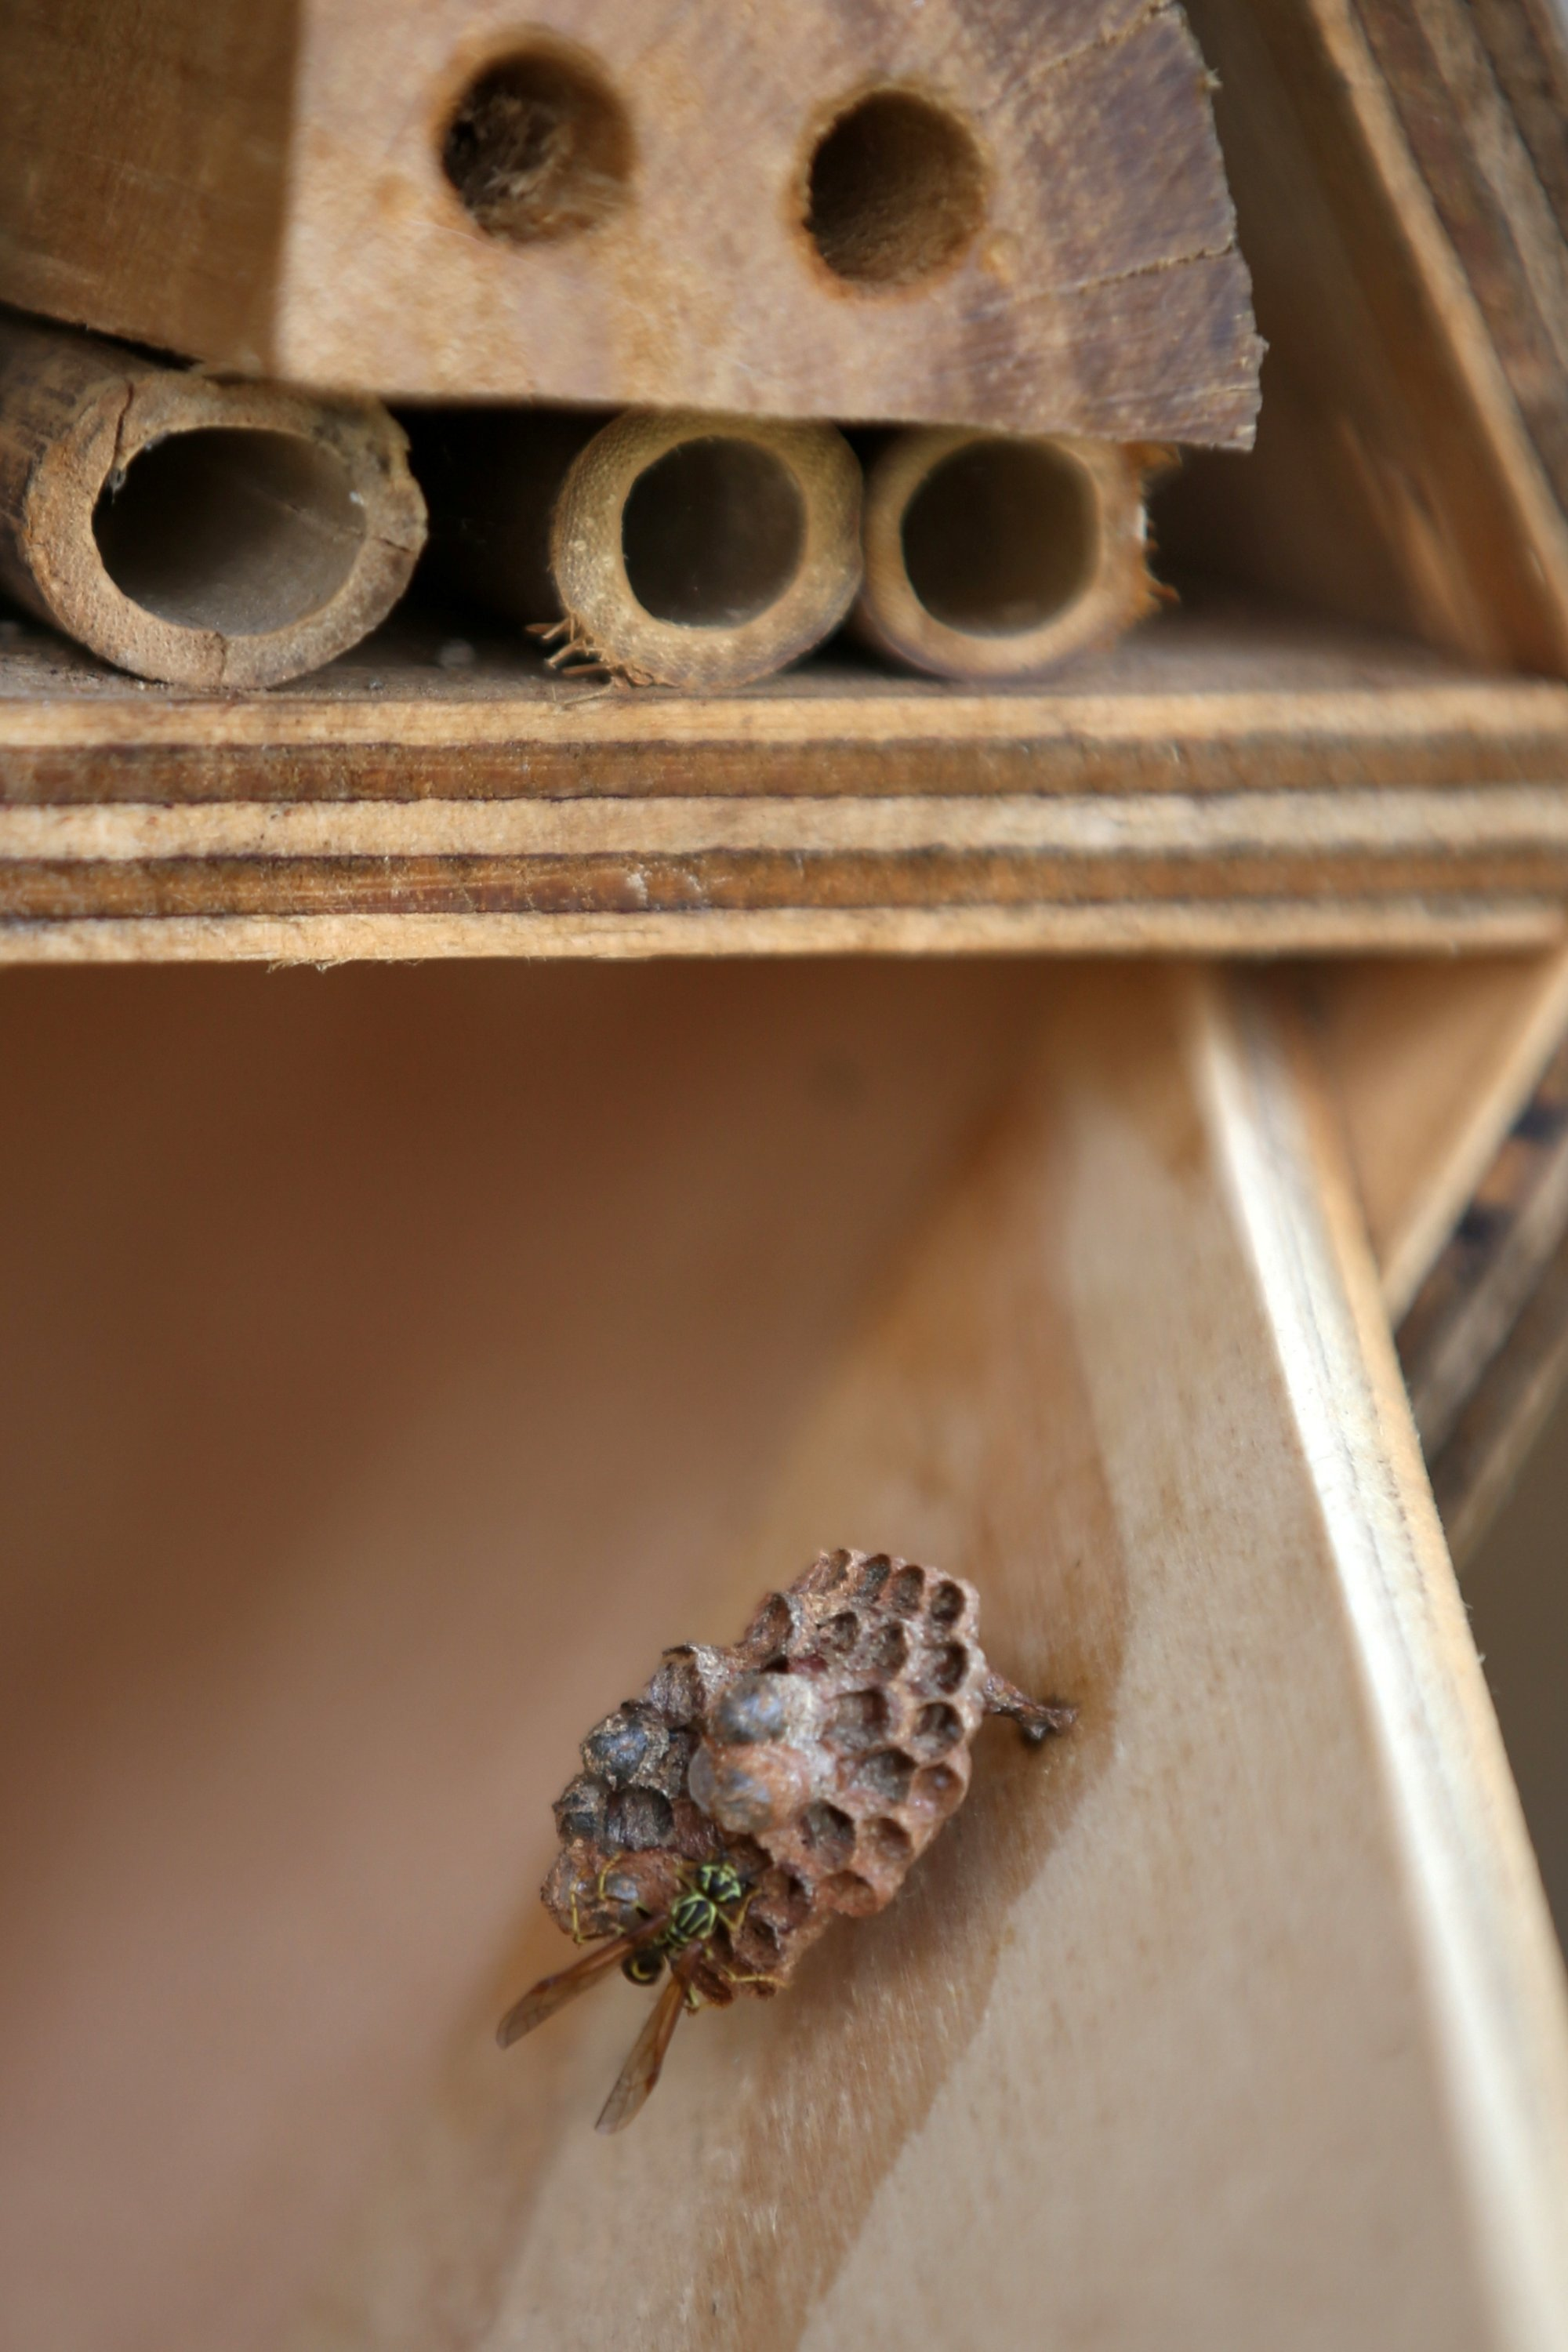 A wasp walks on the nest that's built inside a wooden hotel for solitary bees made by the Metropolitan Area of the Aburra Valley (AMVA) in Barbosa, Colombia, April 21, 2021. (Reuters Photo)